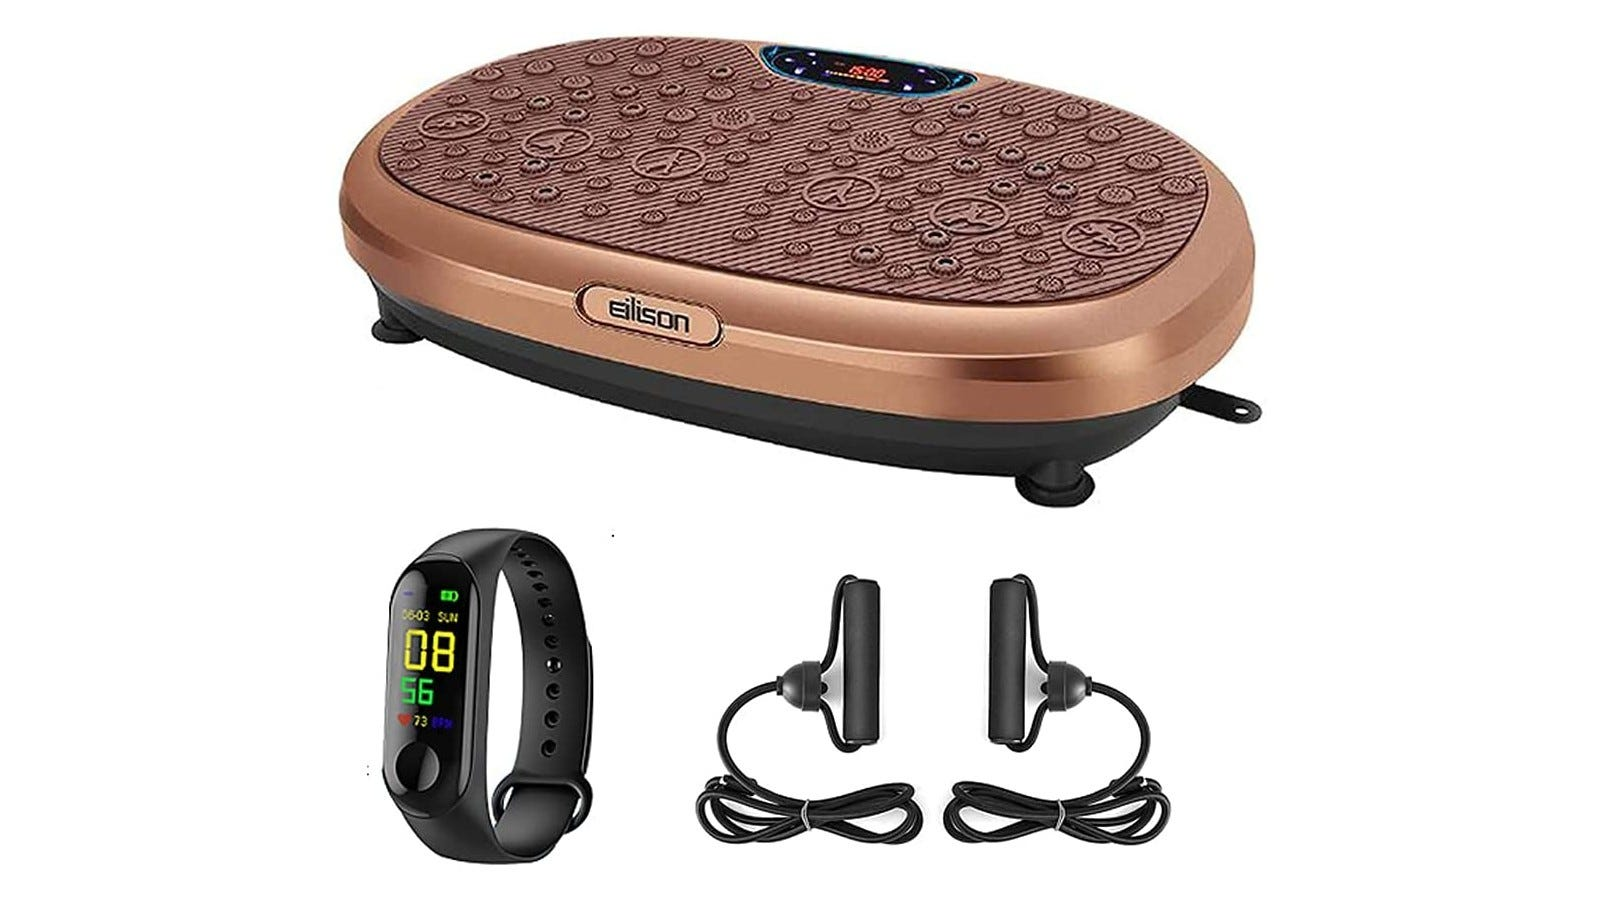 a copper-colored vibration plate with its accessories